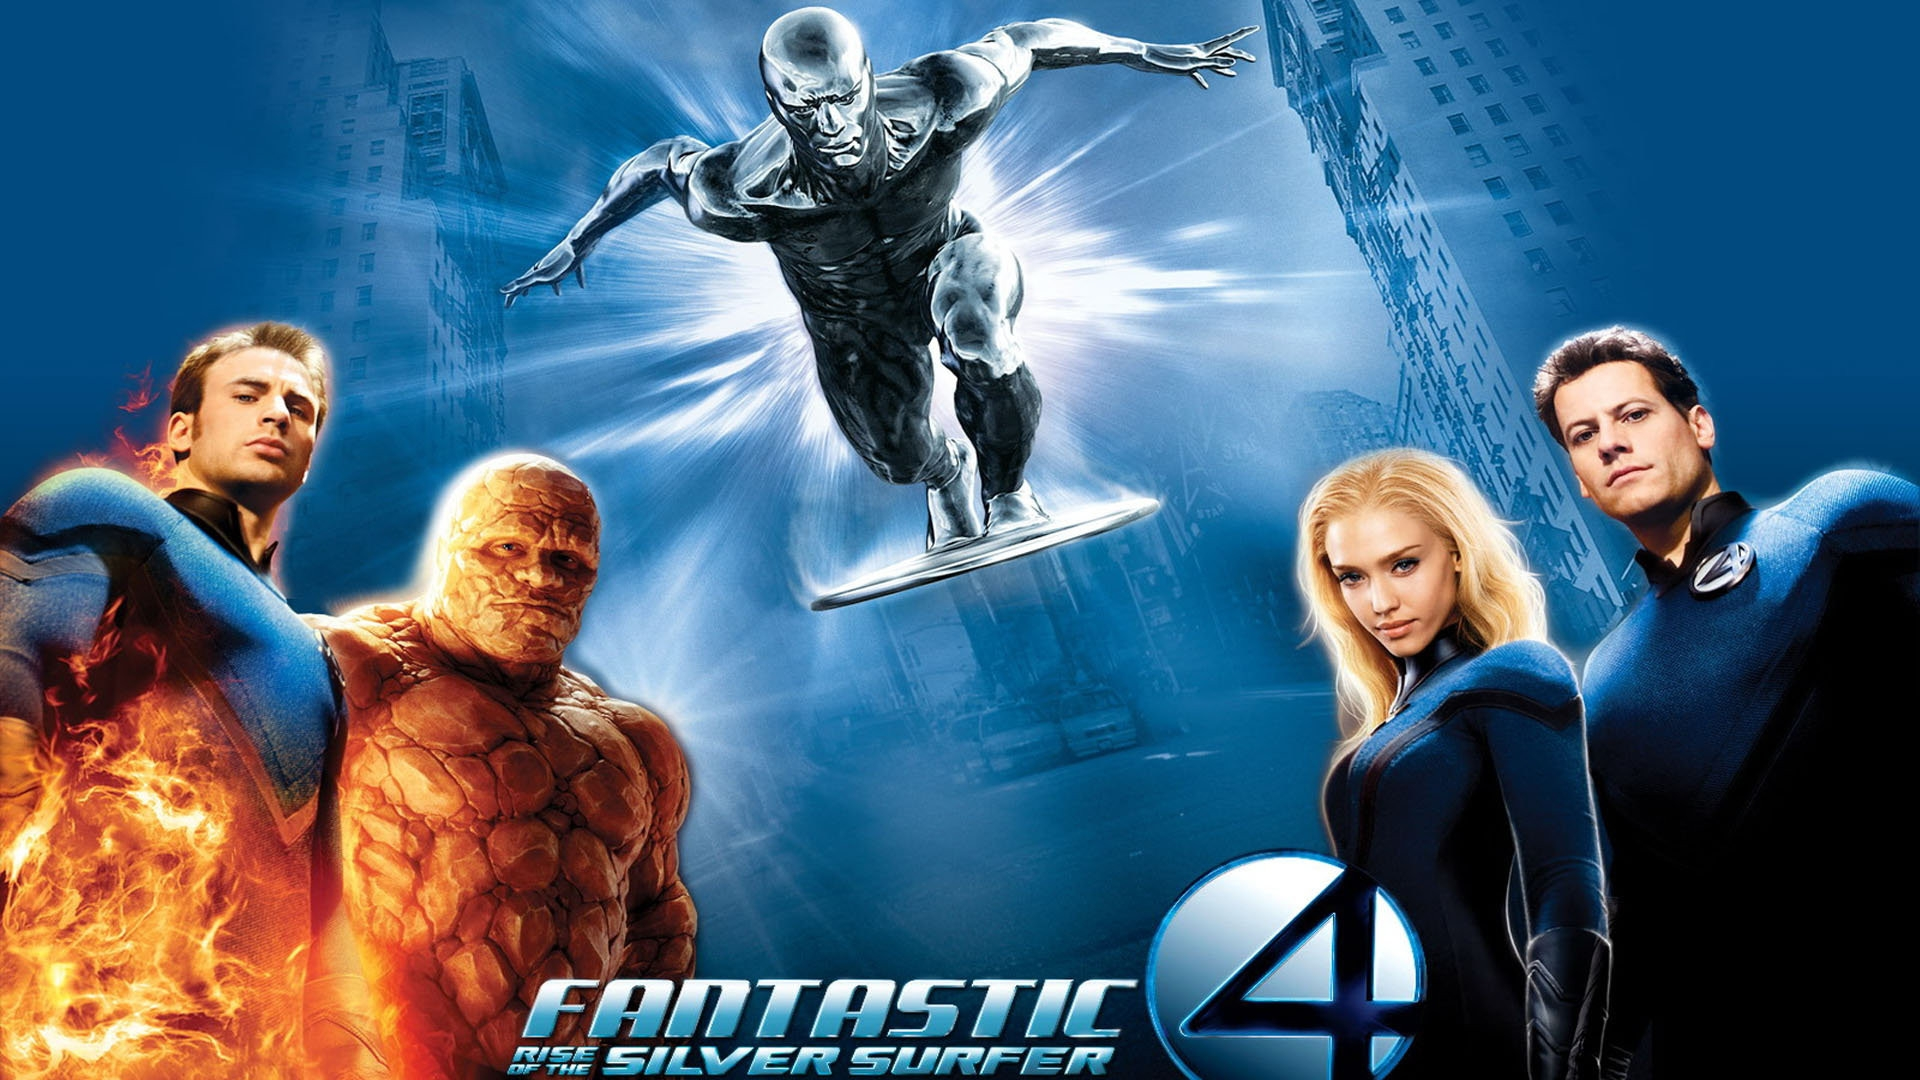 Download Wallpaper 1920x1080 Fantastic 4, Rise Of The